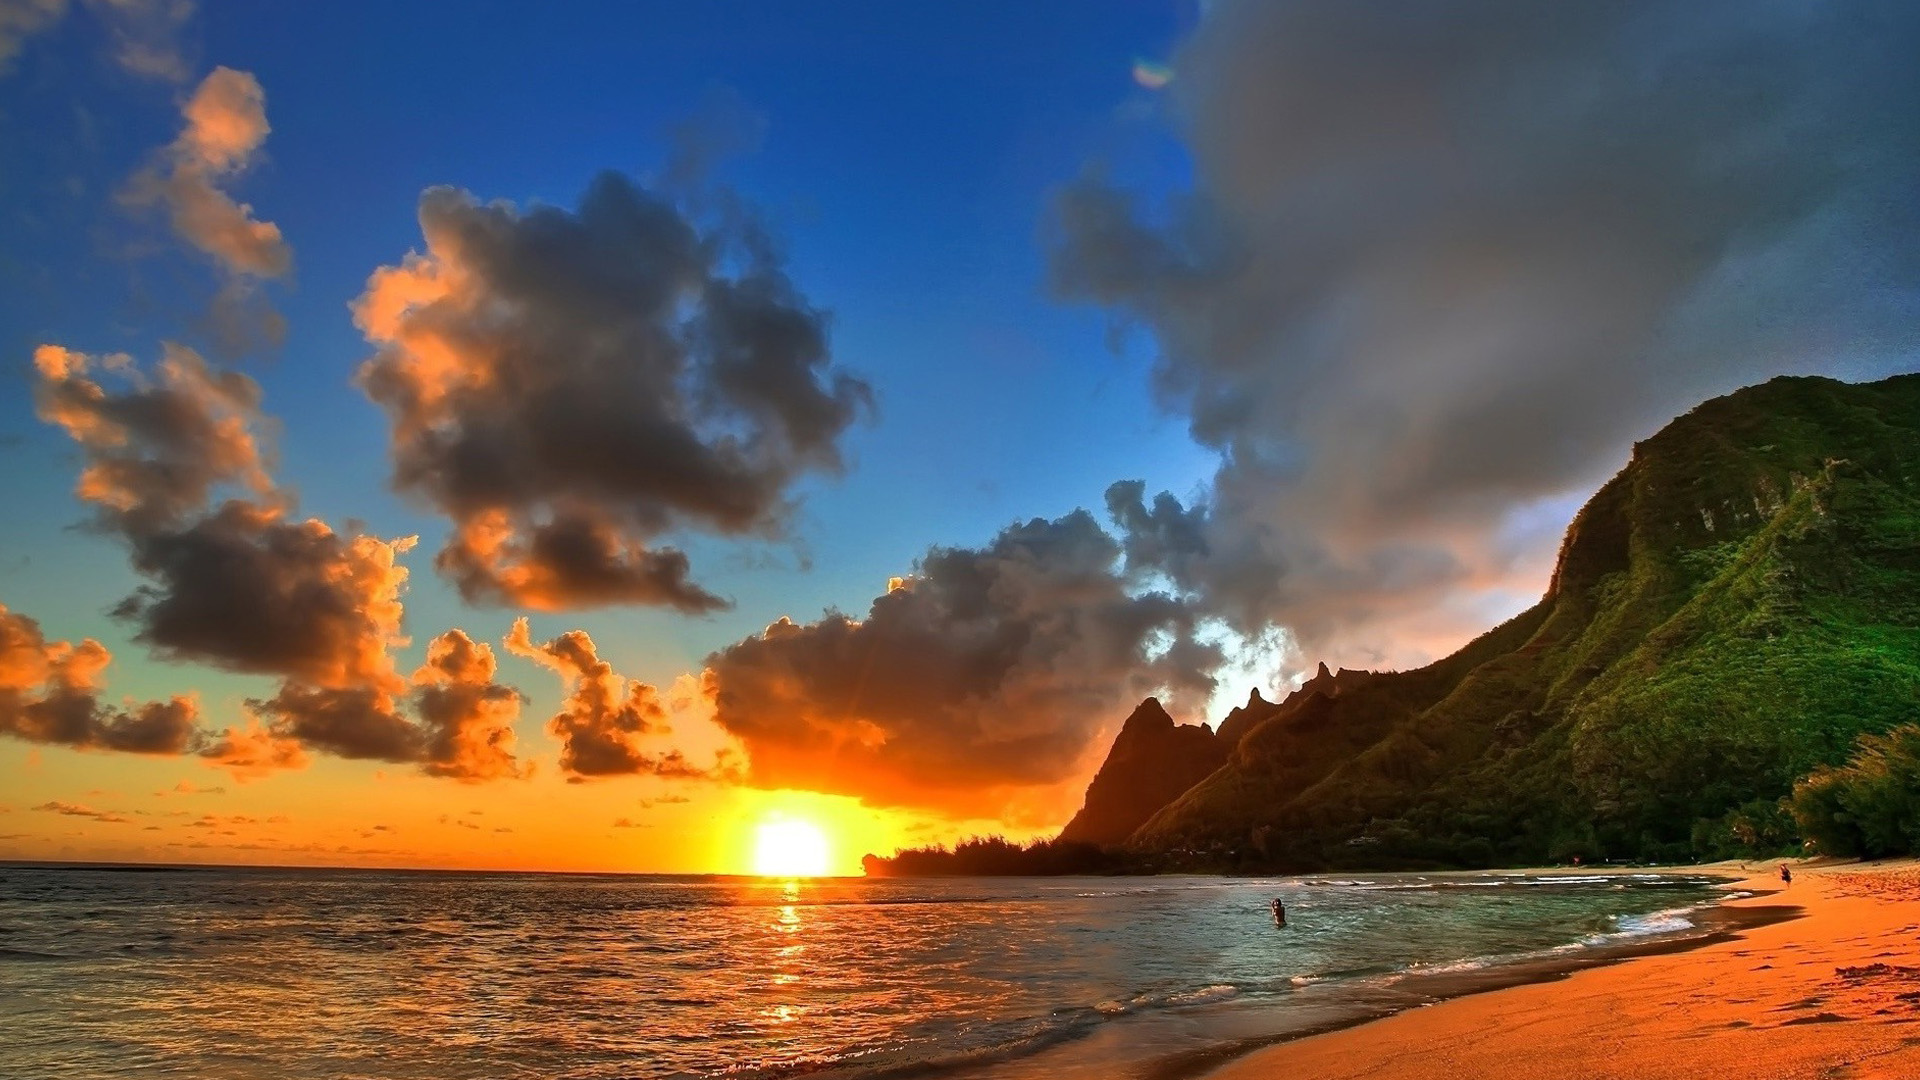 Hd wallpaper beach - Beautiful Scenery Summer Evening Beach Wallpapers Beach Pictures And